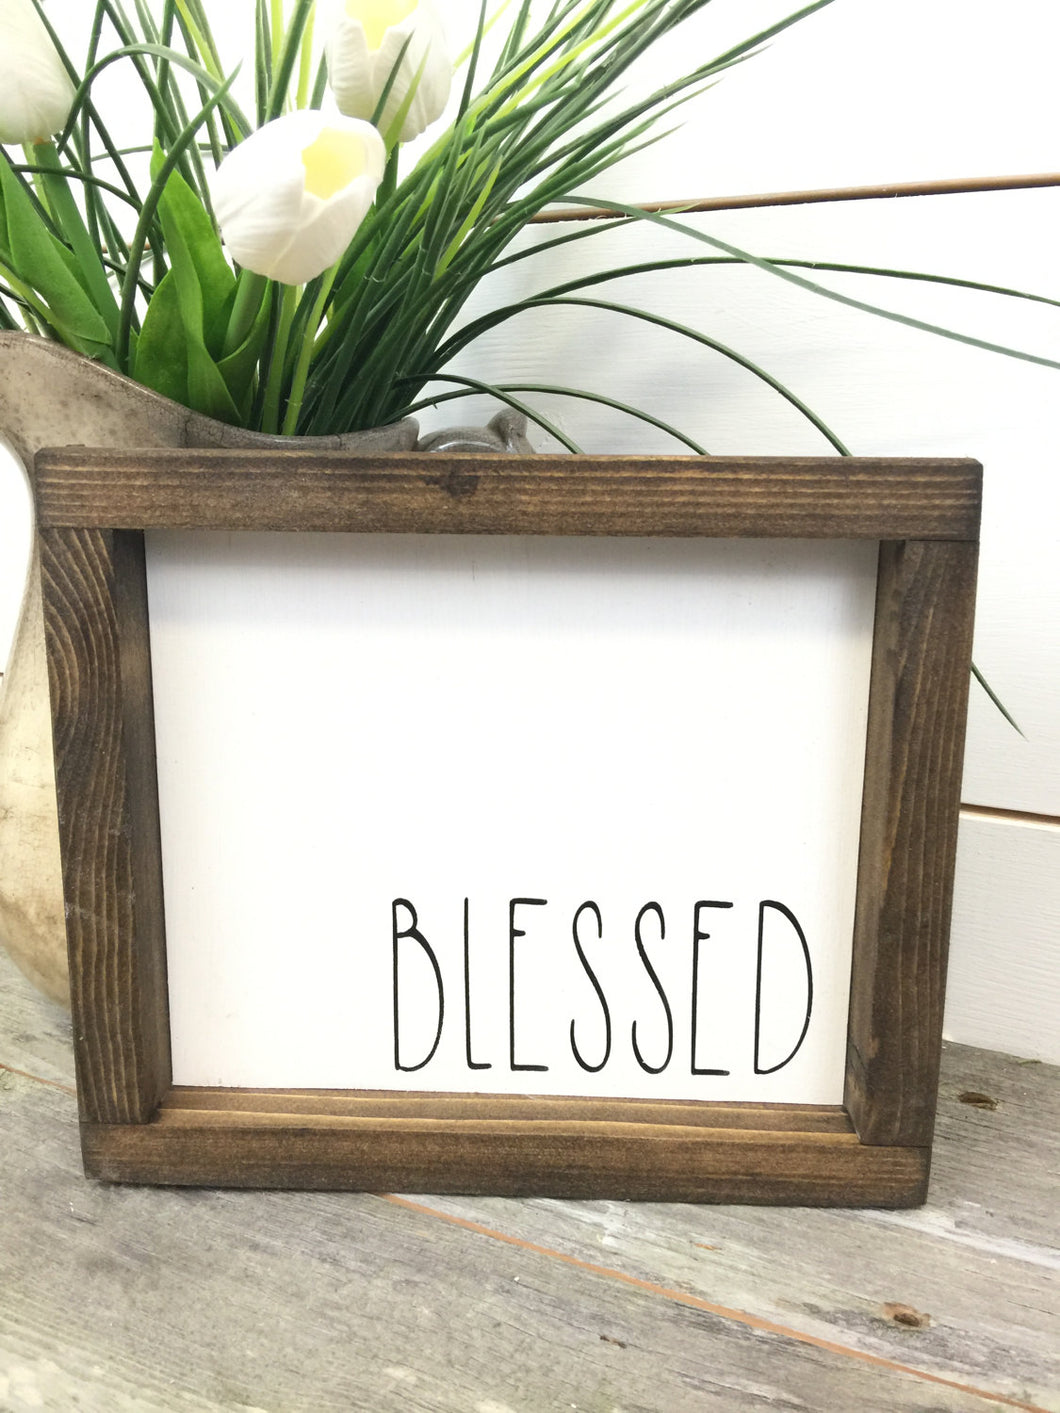 Blessed Wood Sign - Rustic Home Decor - Farmhouse sign - Farmhouse Decor - Rustic Wood Sign - Wood Wall Hanging - Cottage Sign - Wood Sign